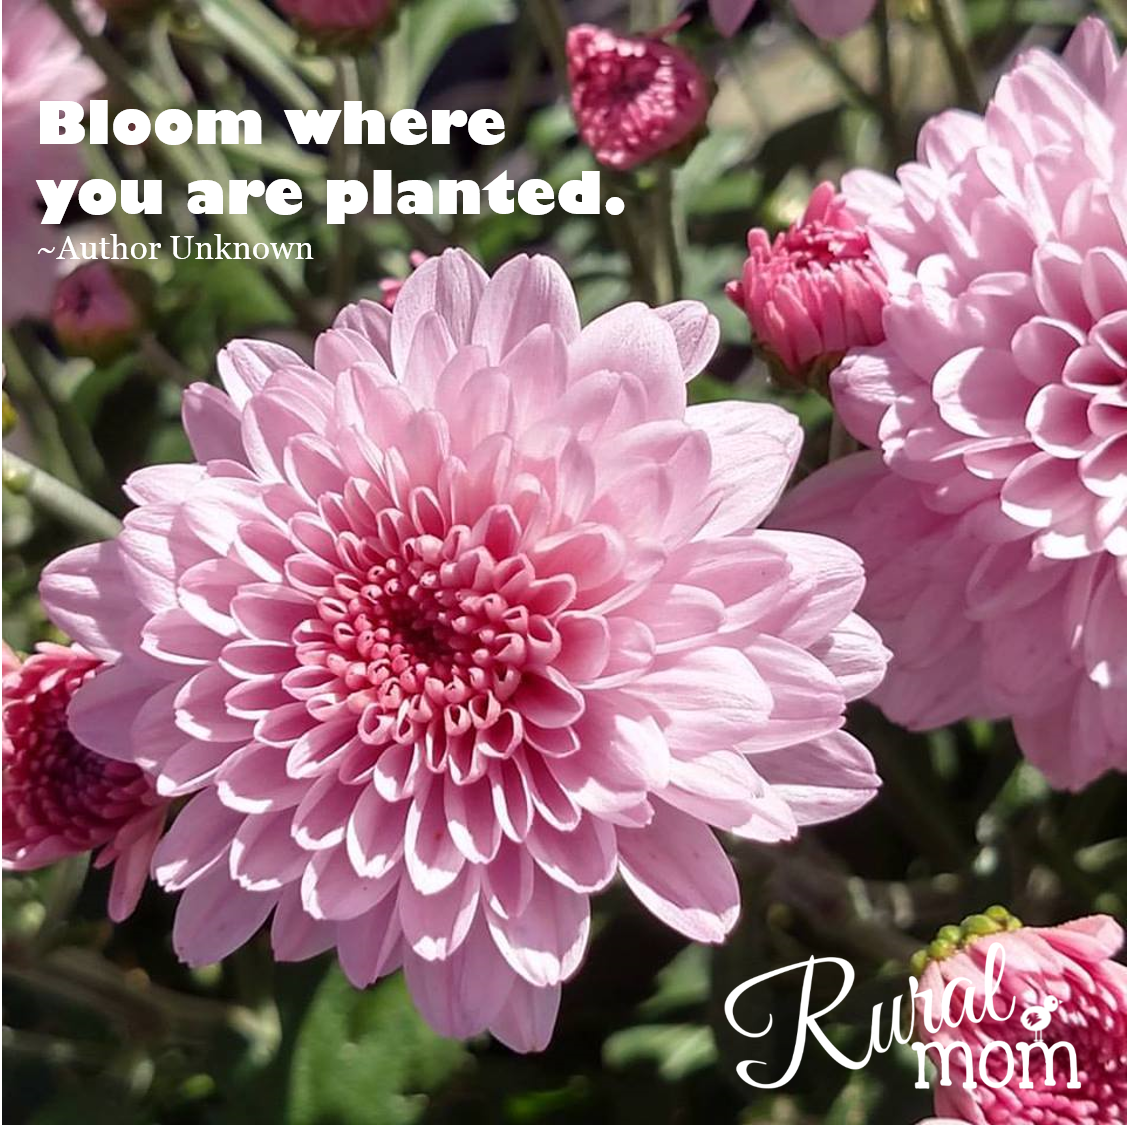 7 gardening quotes and gorgeous blooms to inspire your spring inscribed with favorite gardening quotes feel free to share them or download to your screen saver to brighten your day throughout the winter months as izmirmasajfo